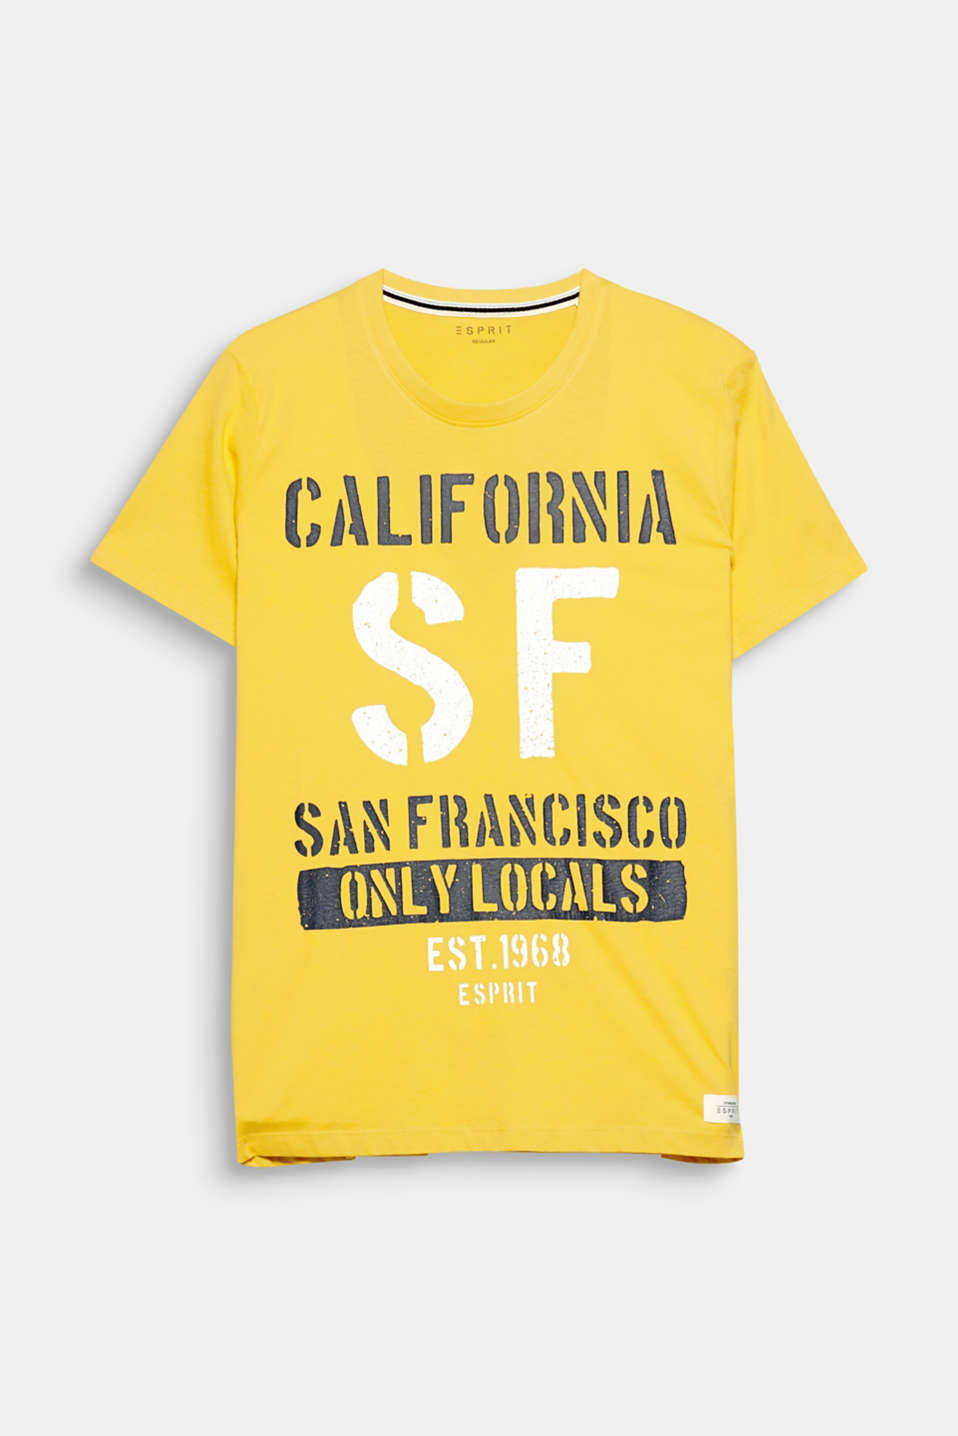 It's time for another Vacation ! Un imprimé, un message - sur ce t-shirt en pur coton.